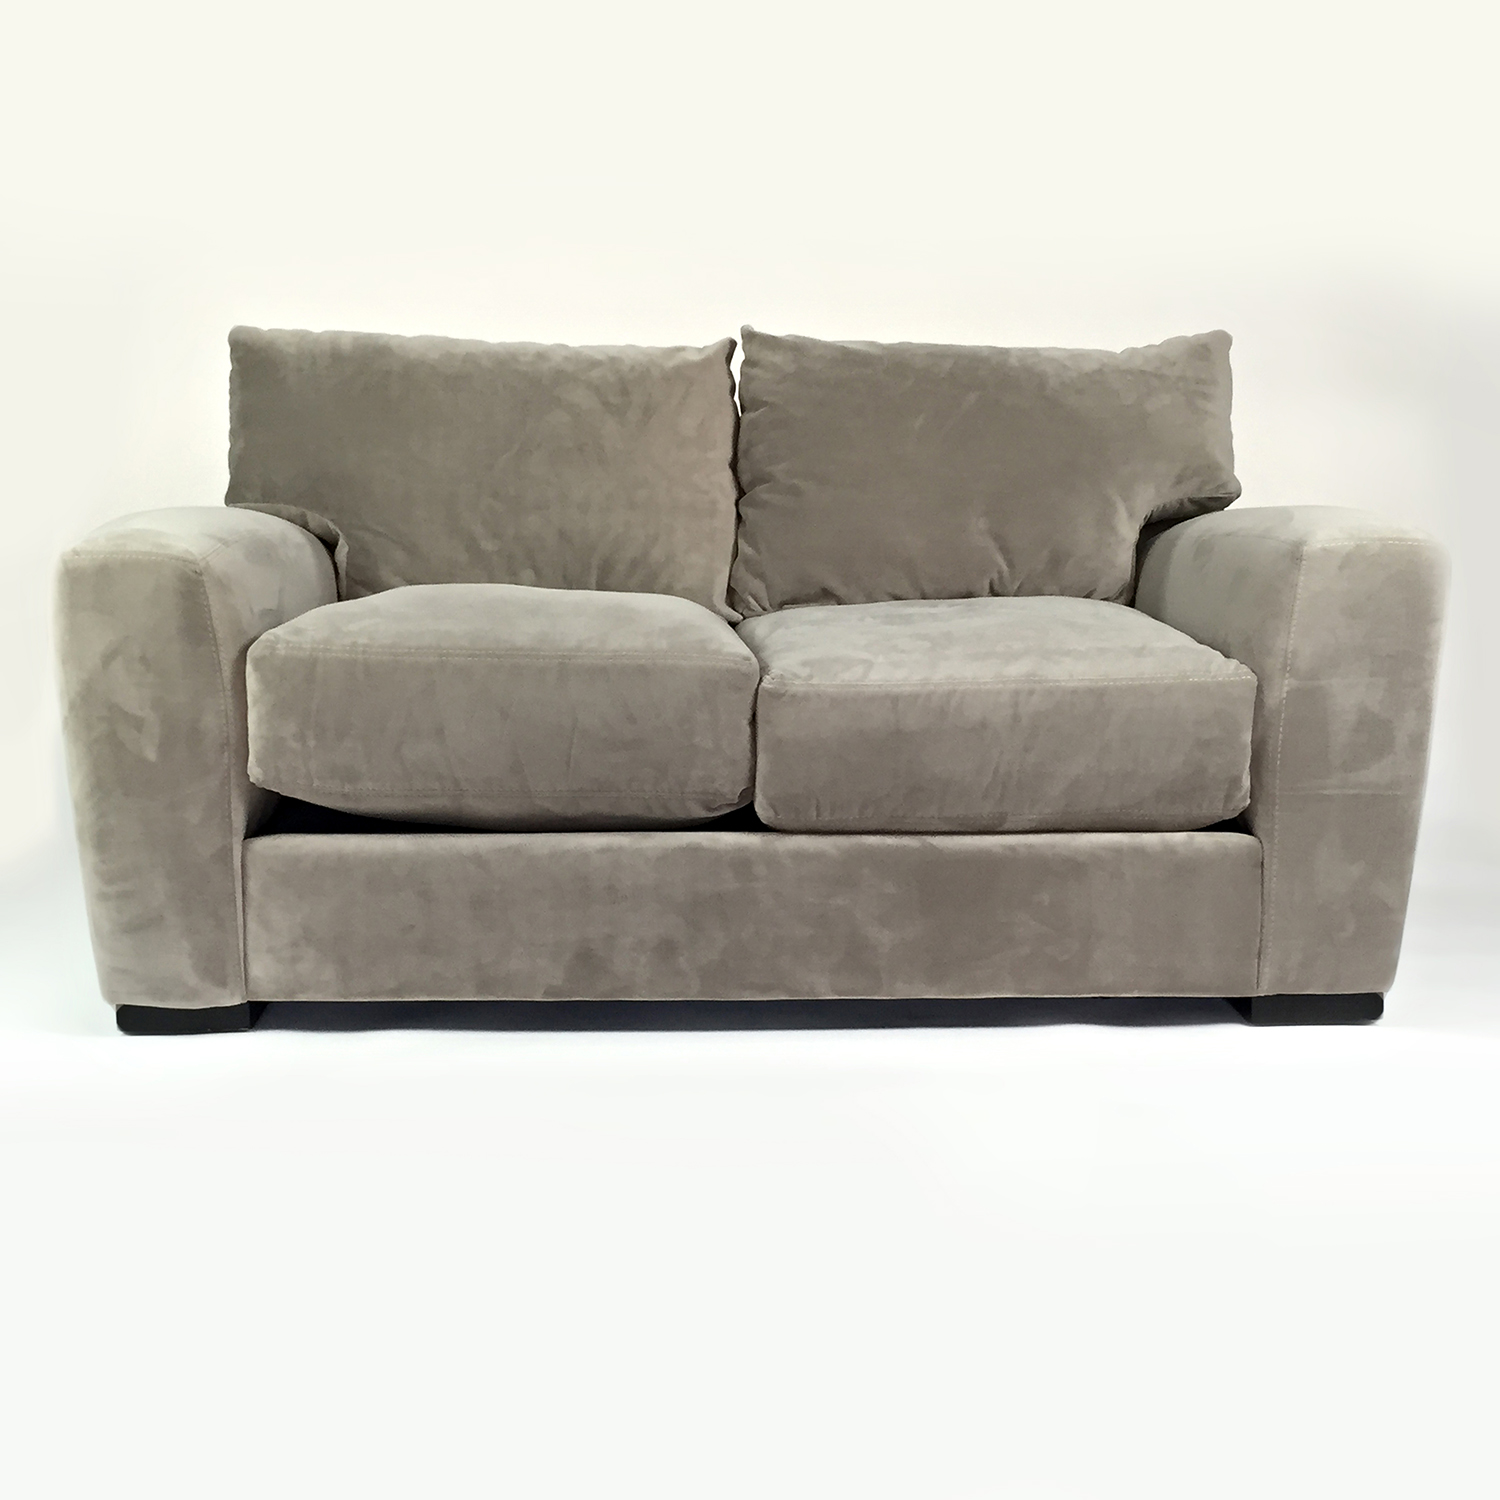 Raymour & Flanigan Raymour & Flanigan Microfiber Loveseat for sale